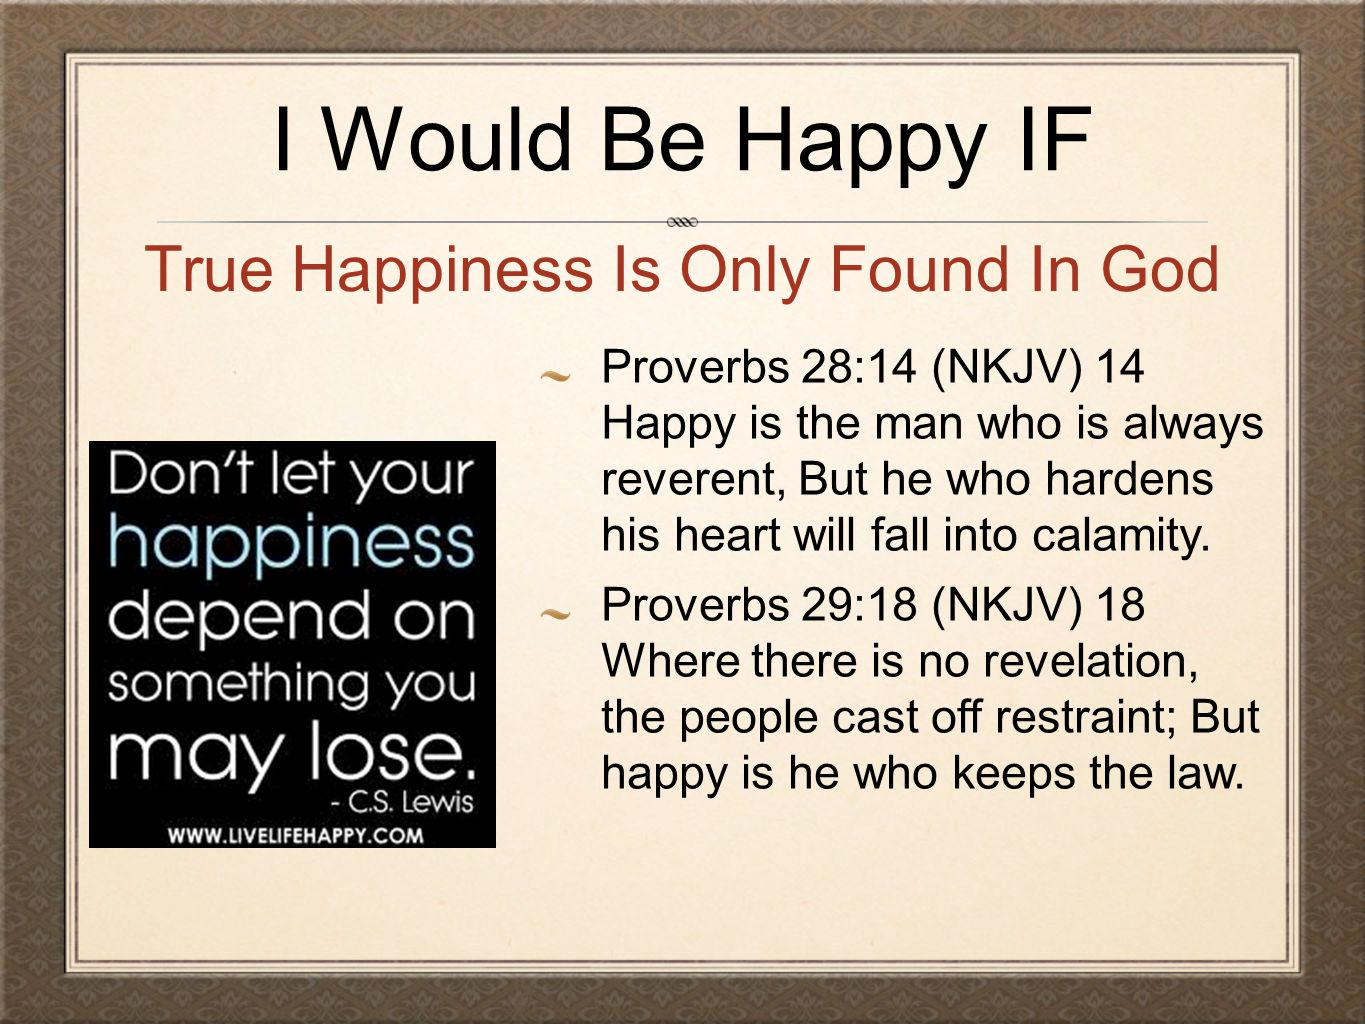 I Would Be Happy IF Proverbs 28:14 (NKJV) 14 Happy is the man who is always reverent, But he who hardens his heart will fall into calamity.